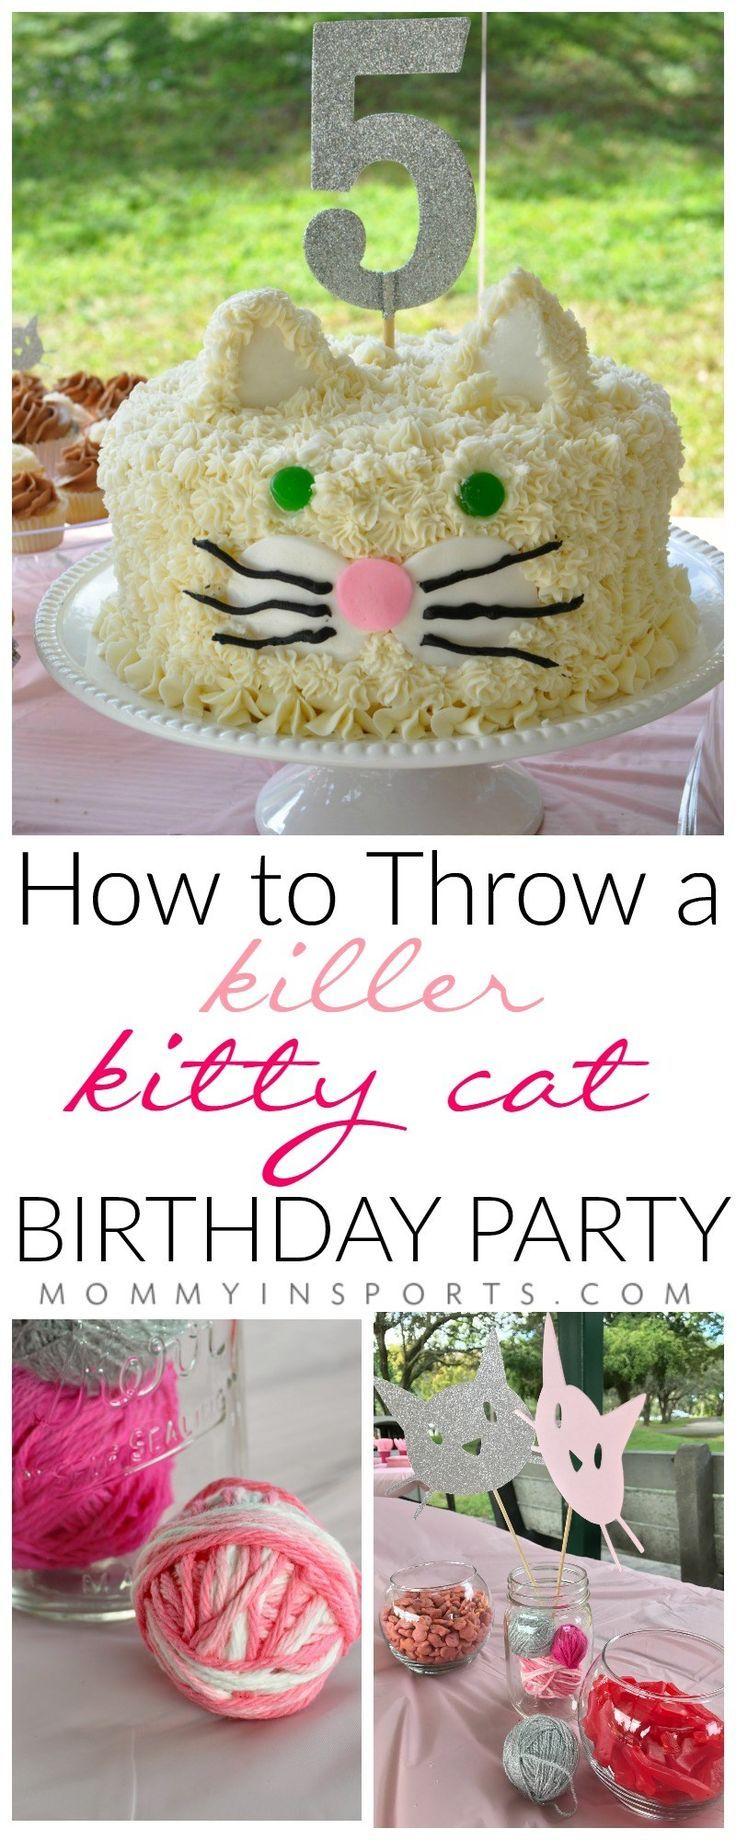 Is your little one obsessed with cats? Here are some adorable ideas to help you throw a killer kitty cat party that won't break the bank!